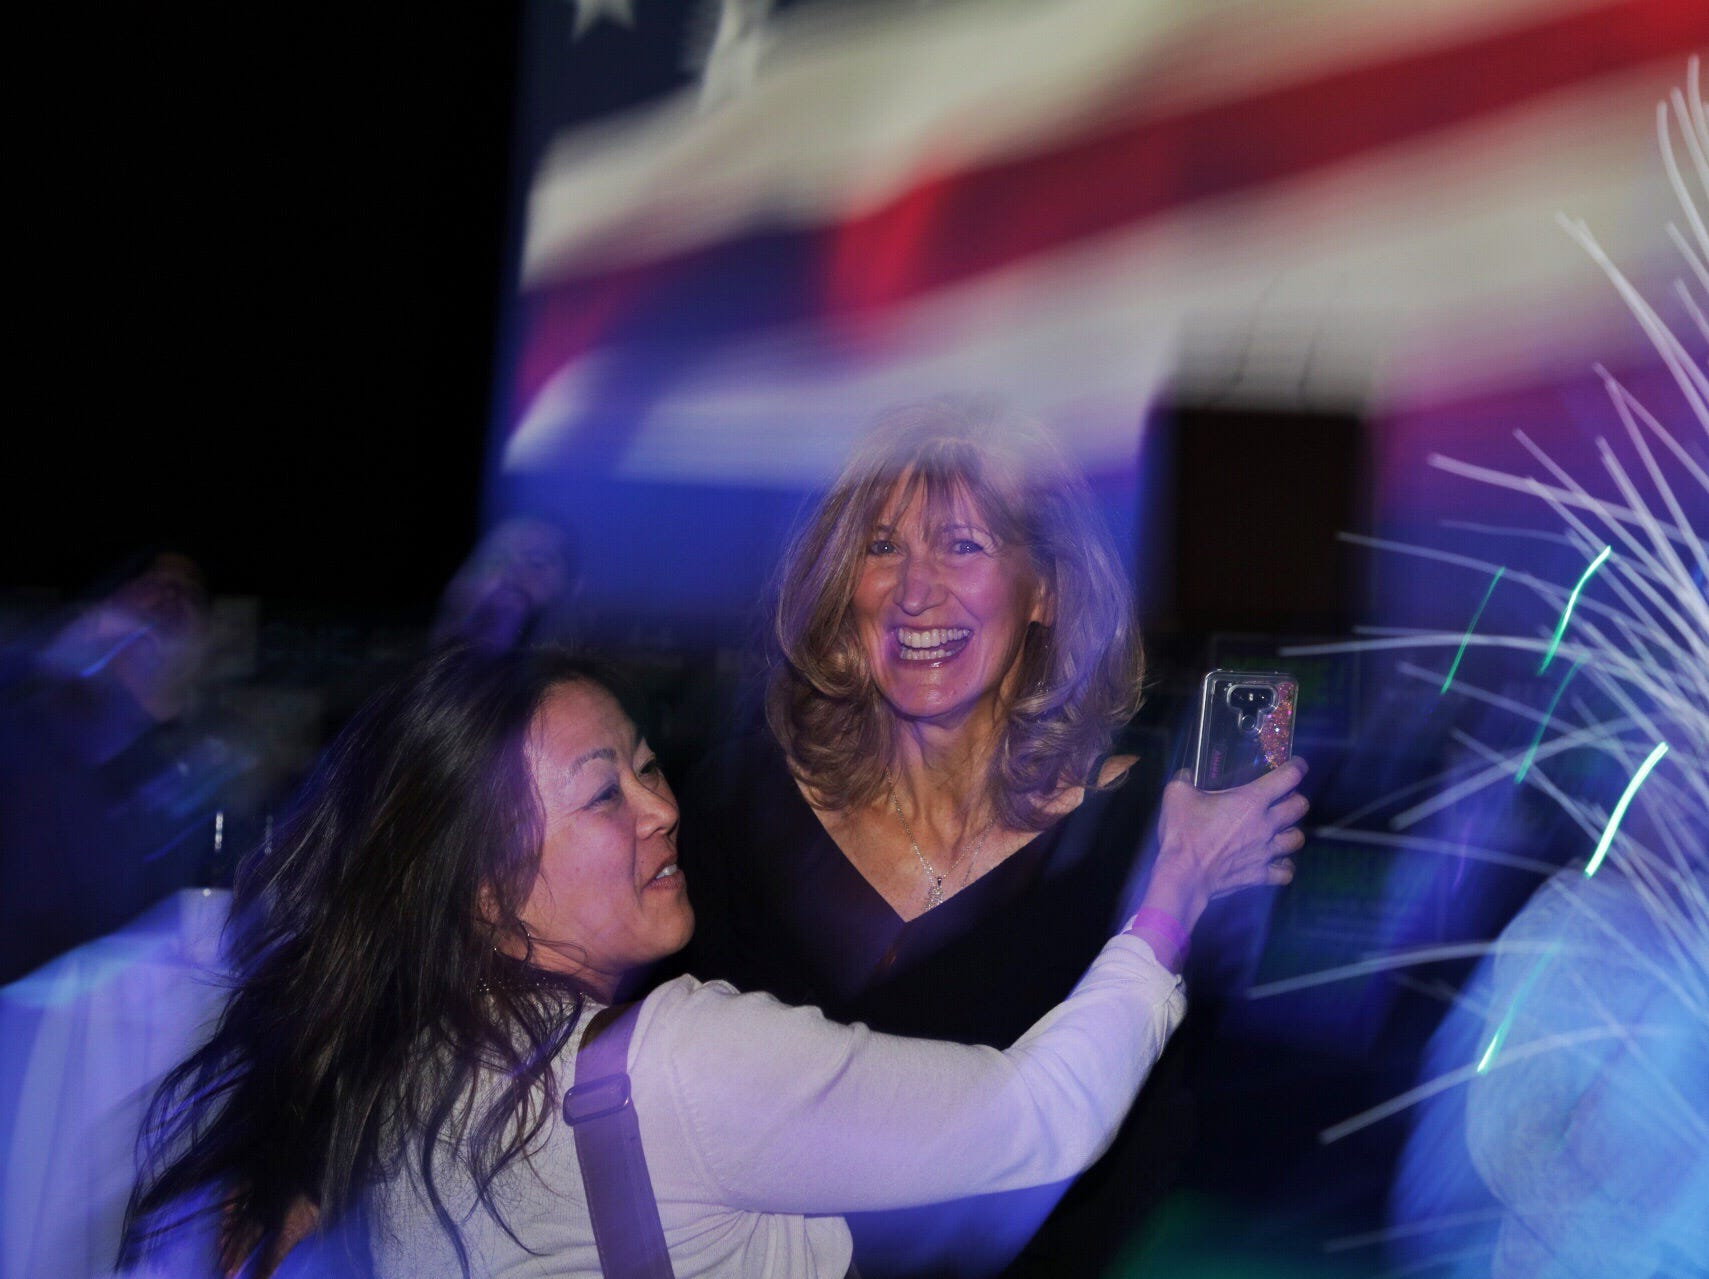 Patricia Paul of Birmingham, right greets Catherine Bansek of Royal Oak both volunteers who worked with Fems for Dems at the watch party for Democrats at MotorCity Casino's Sound Board in Detroit on Tuesday, Nov. 6, 2018.